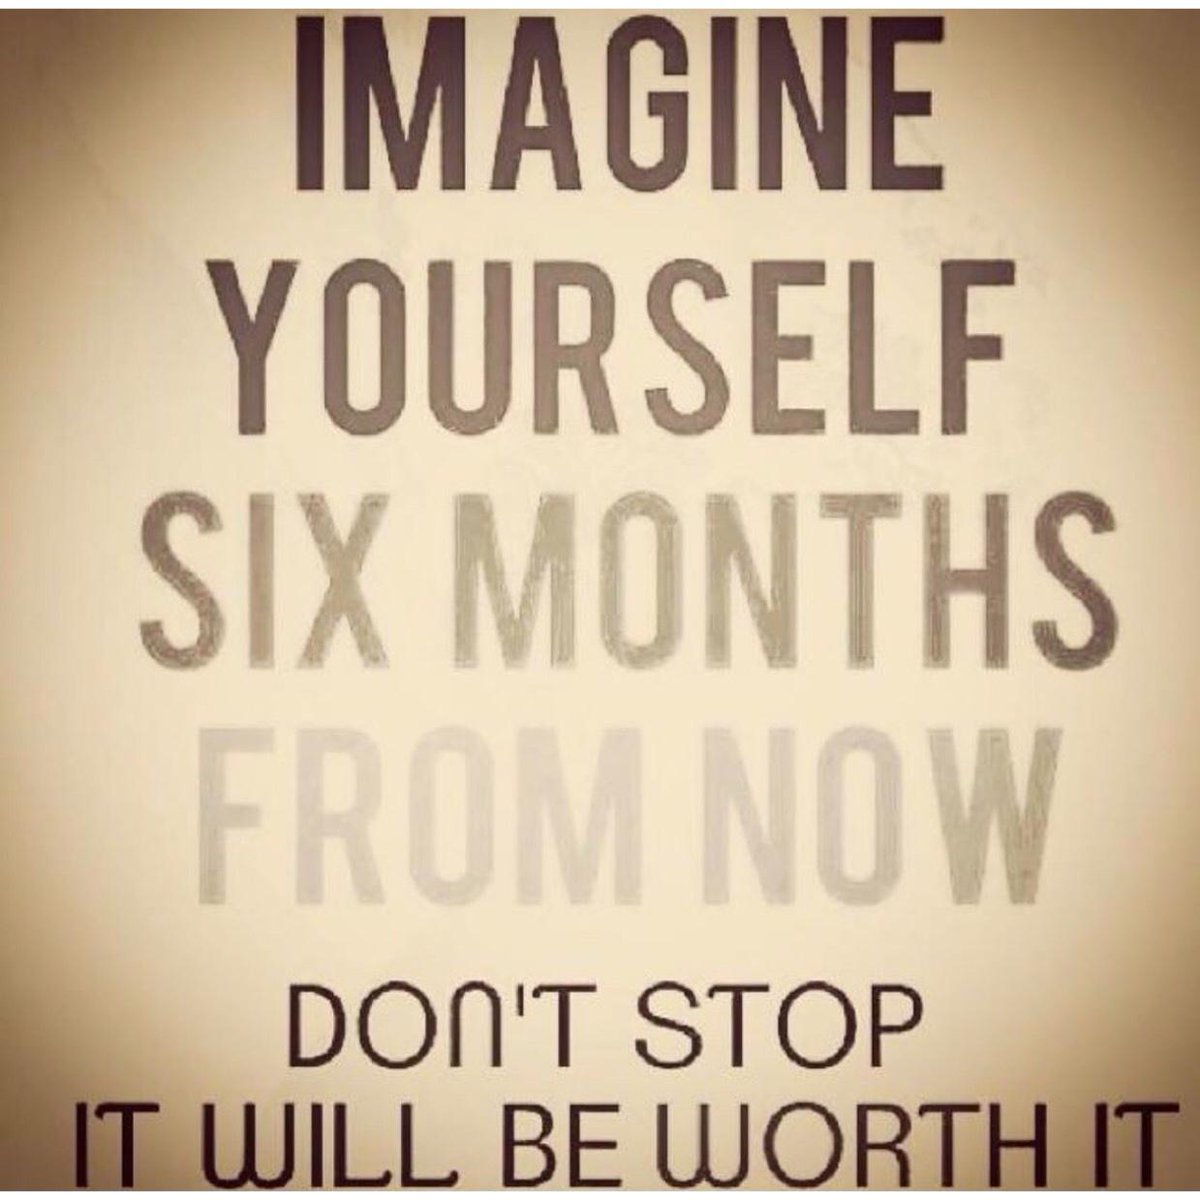 Texasluver On Twitter Imagine Yourself Six Months From Now Dont Stop It Will Be Worth It Quote Success Merida Realestate Quoteof